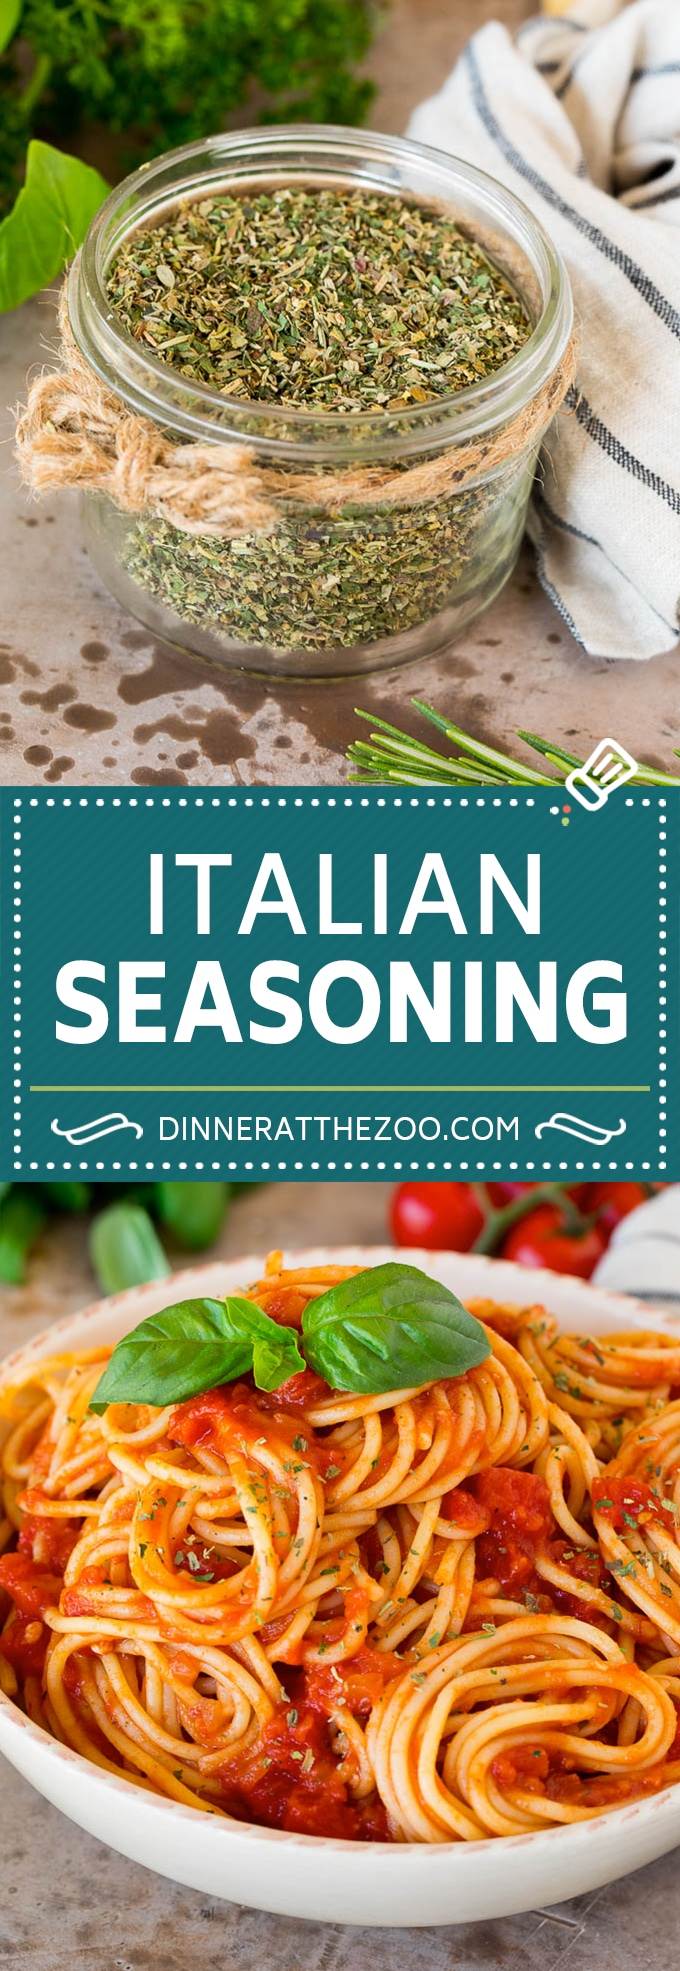 This homemade Italian seasoning is a blend of a variety of herbs and spices that creates a flavorful mix.